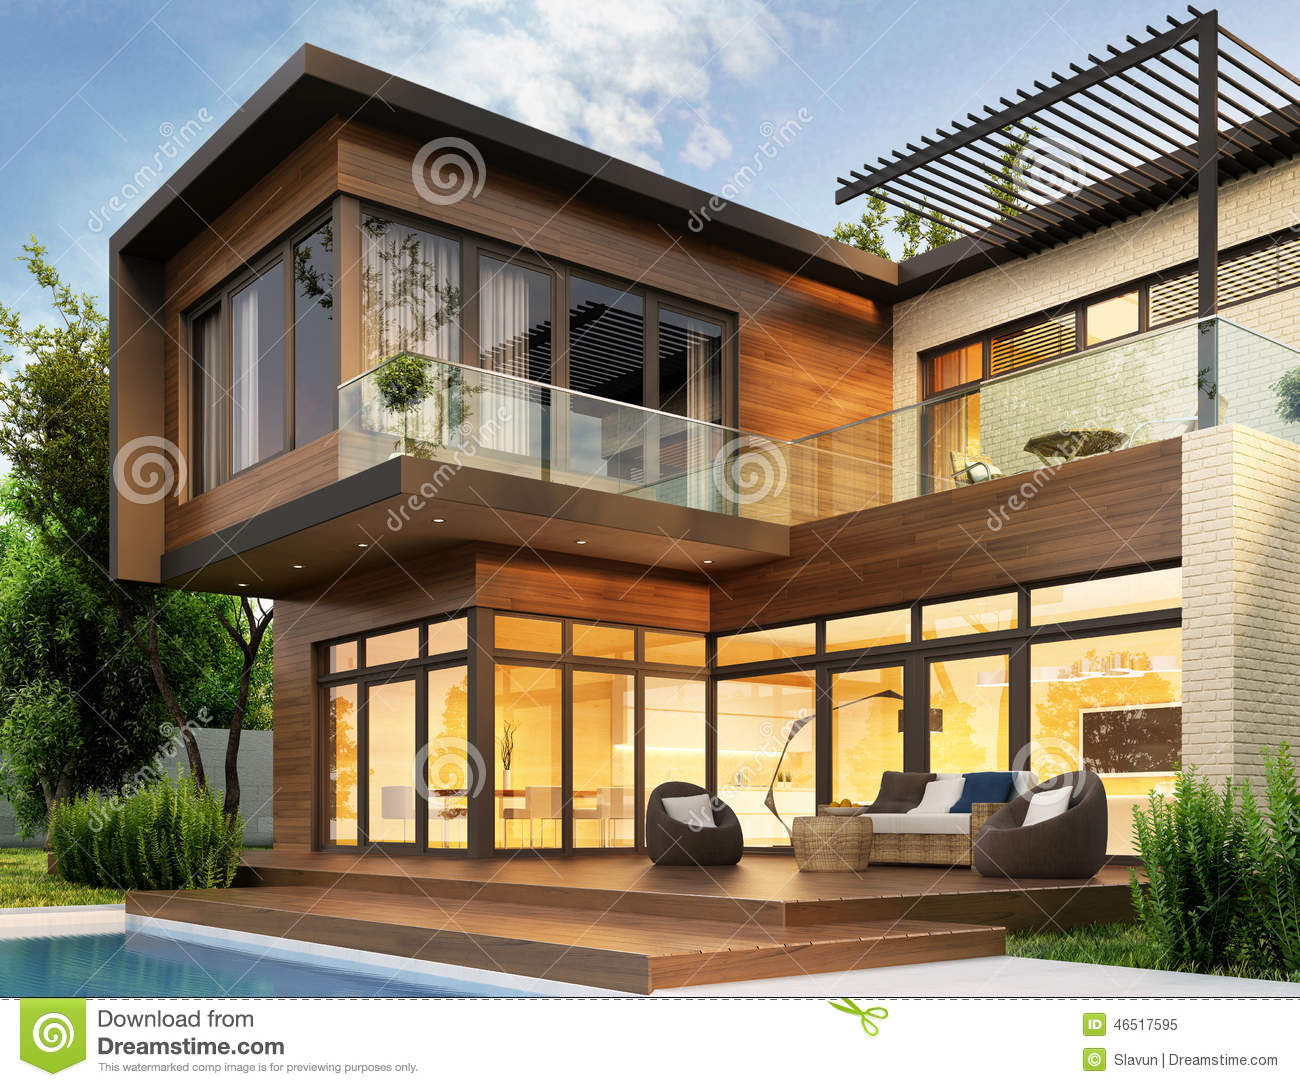 Modern house stock photo image 46517595 for House plans with photos of interior and exterior